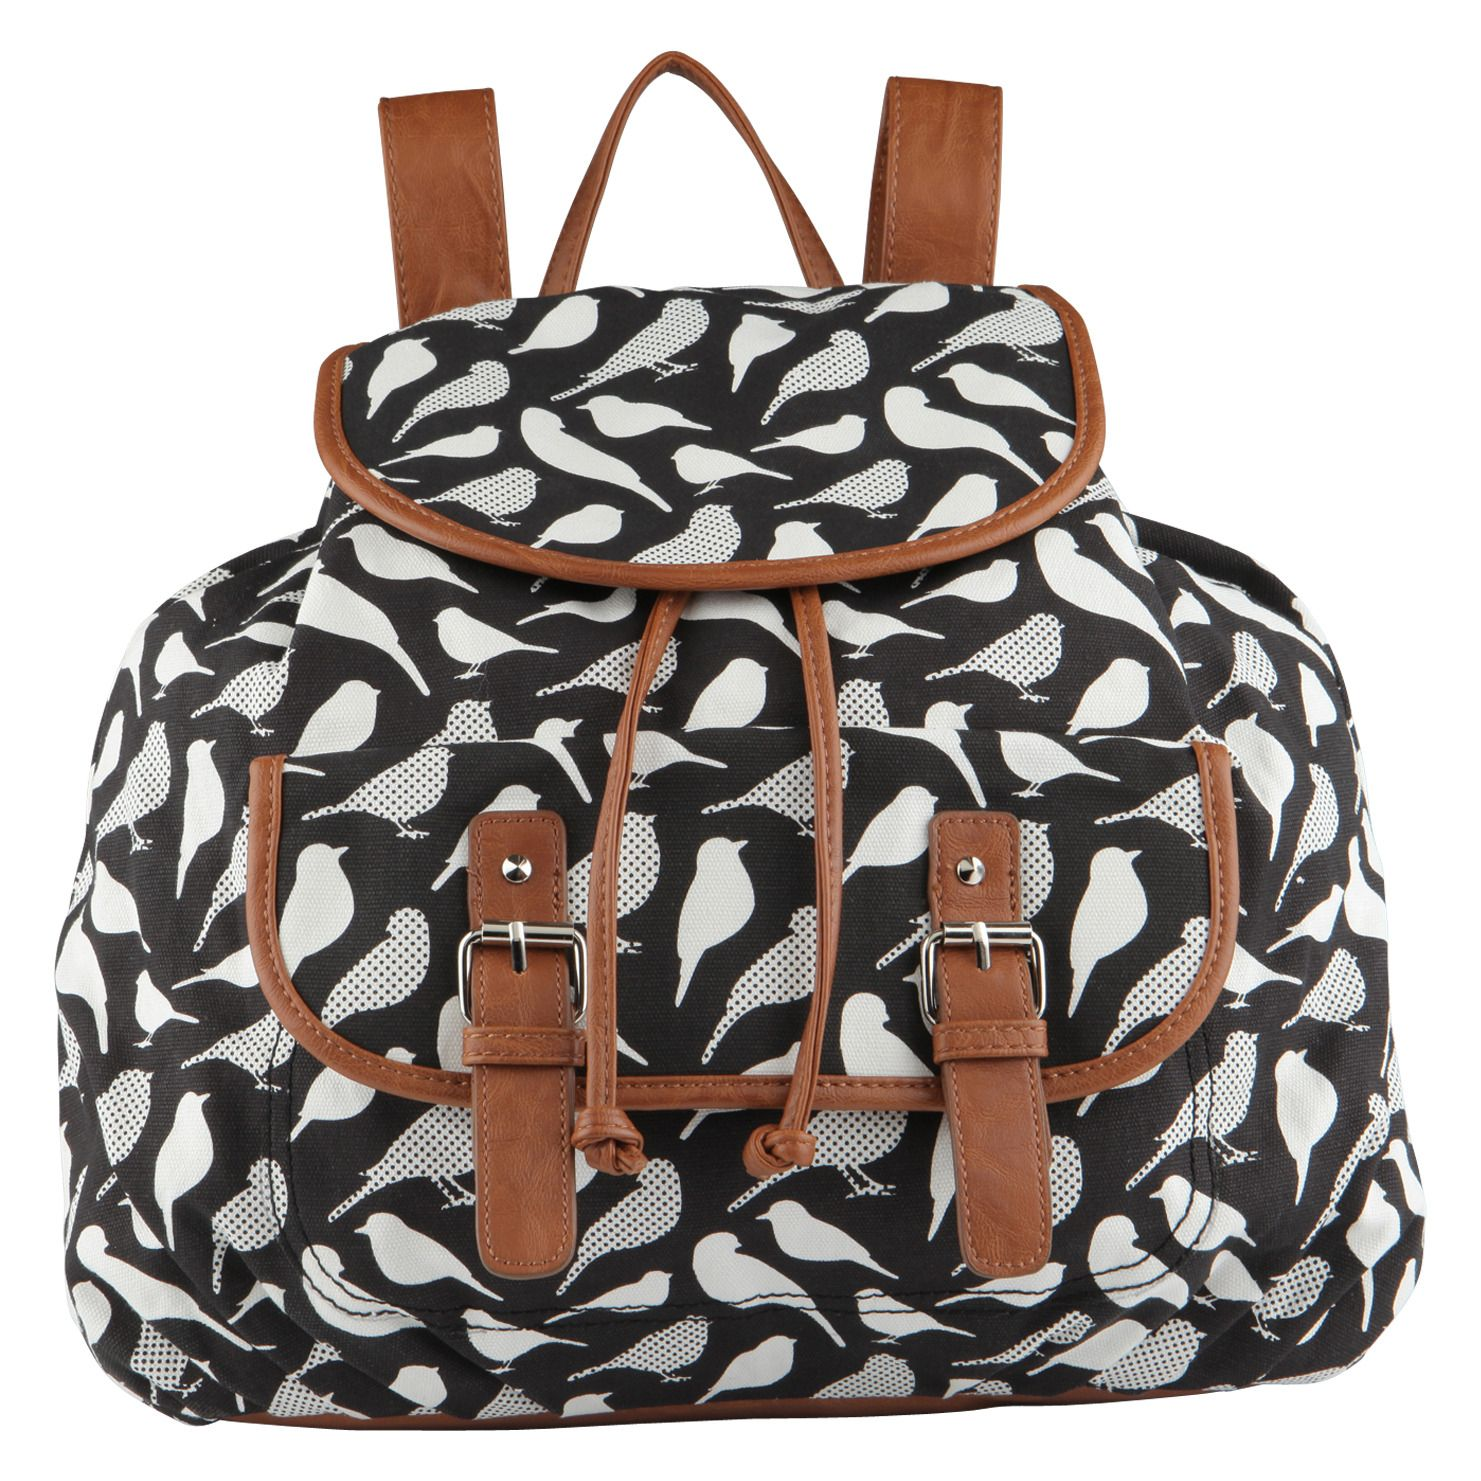 a389ec24ad6 BRIGGSDALE - handbags s backpacks   messengers for sale at ALDO Shoes.